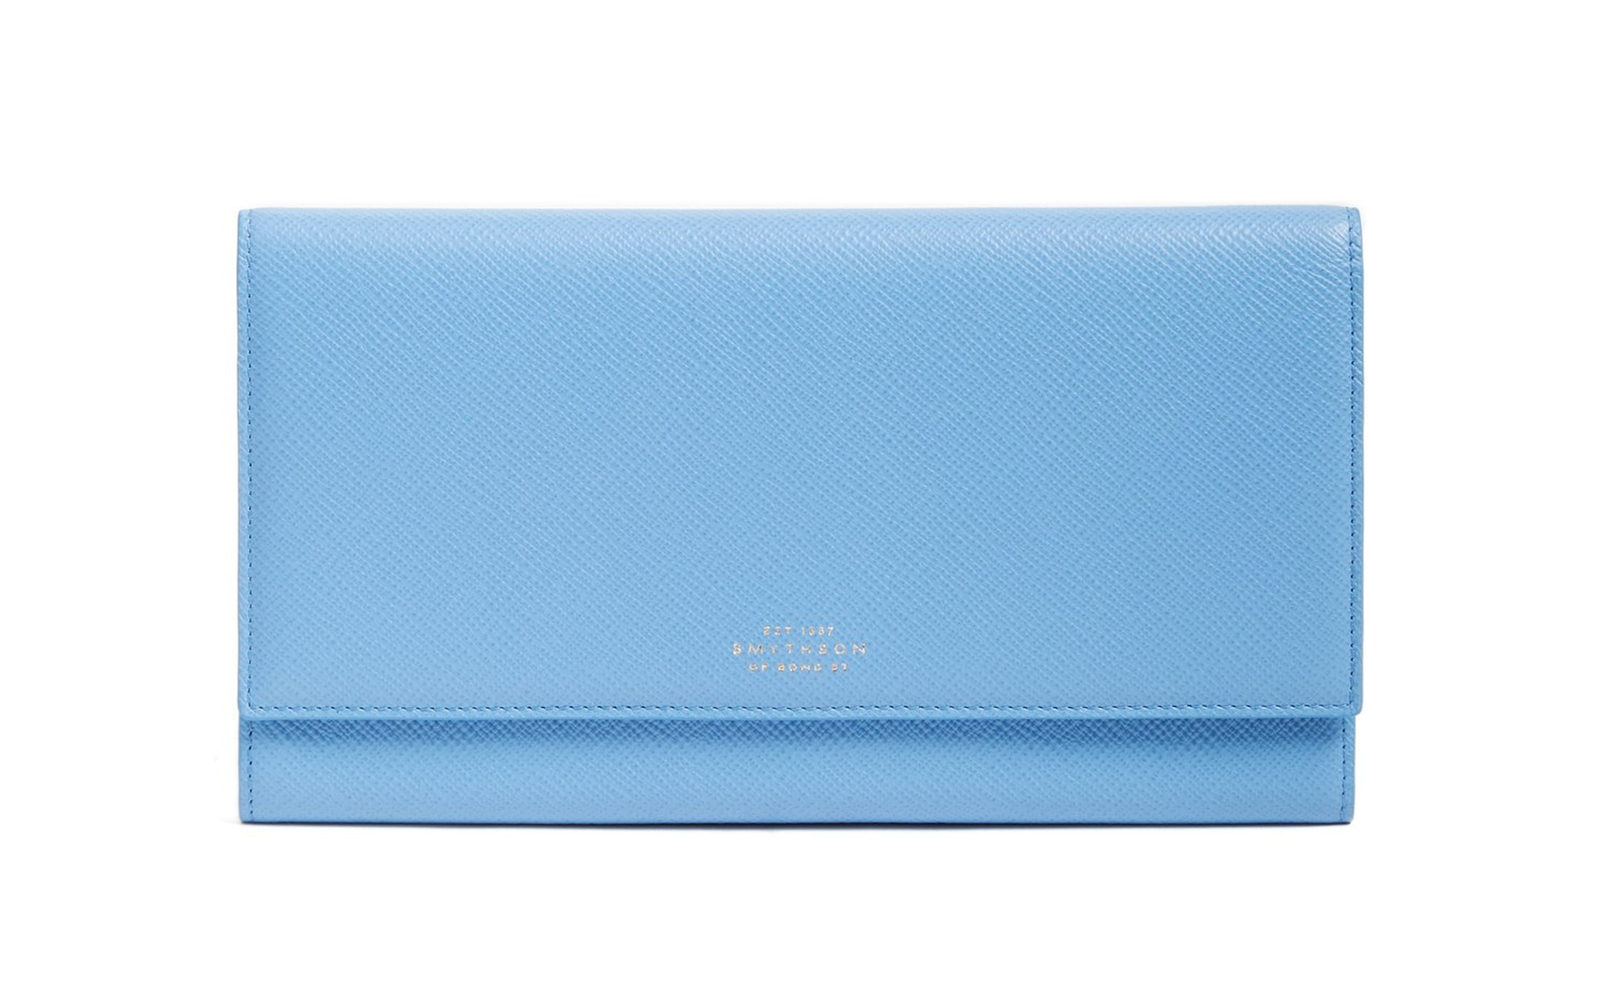 The Travel Wallet: Smythson 'Panama' Wallet